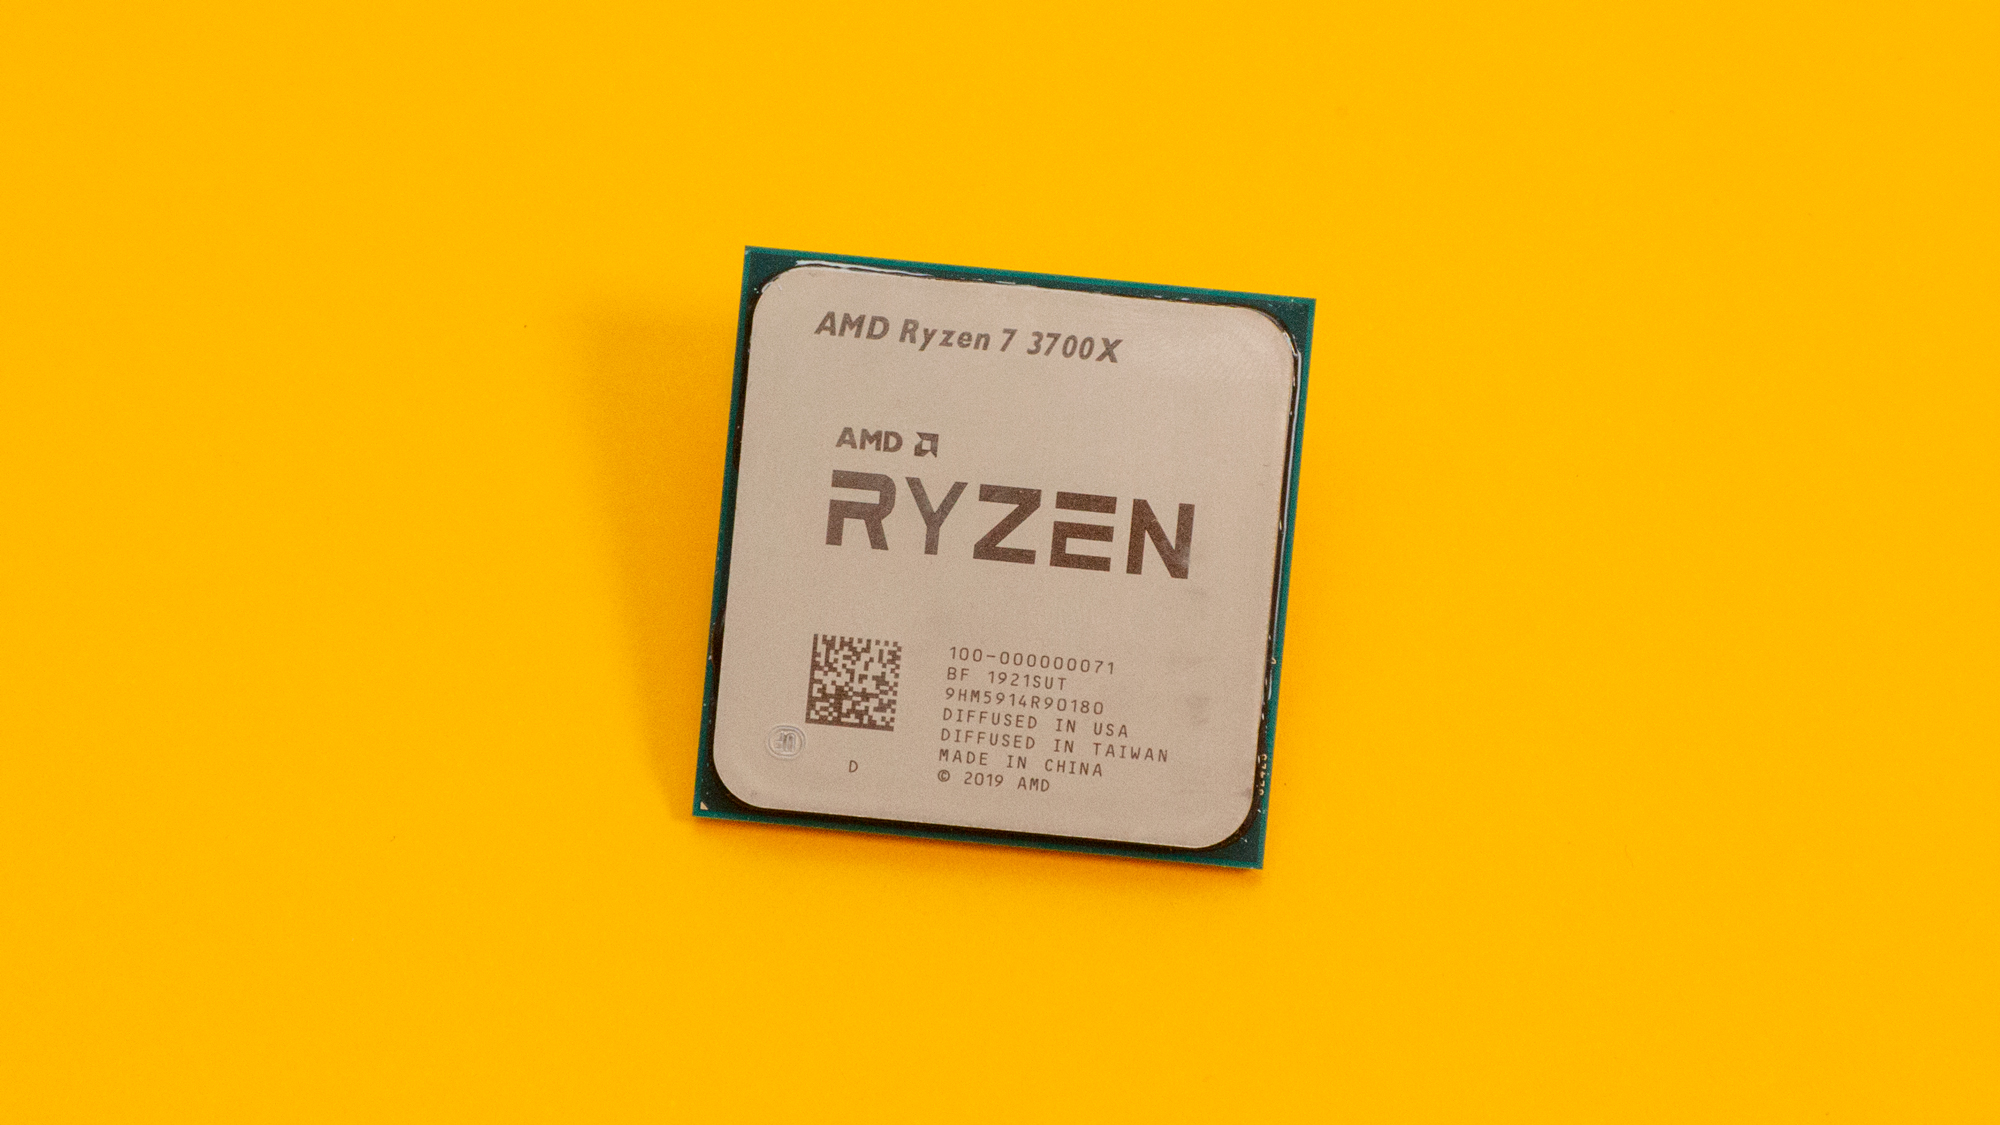 Amd Ryzen 7 3700x Techradar